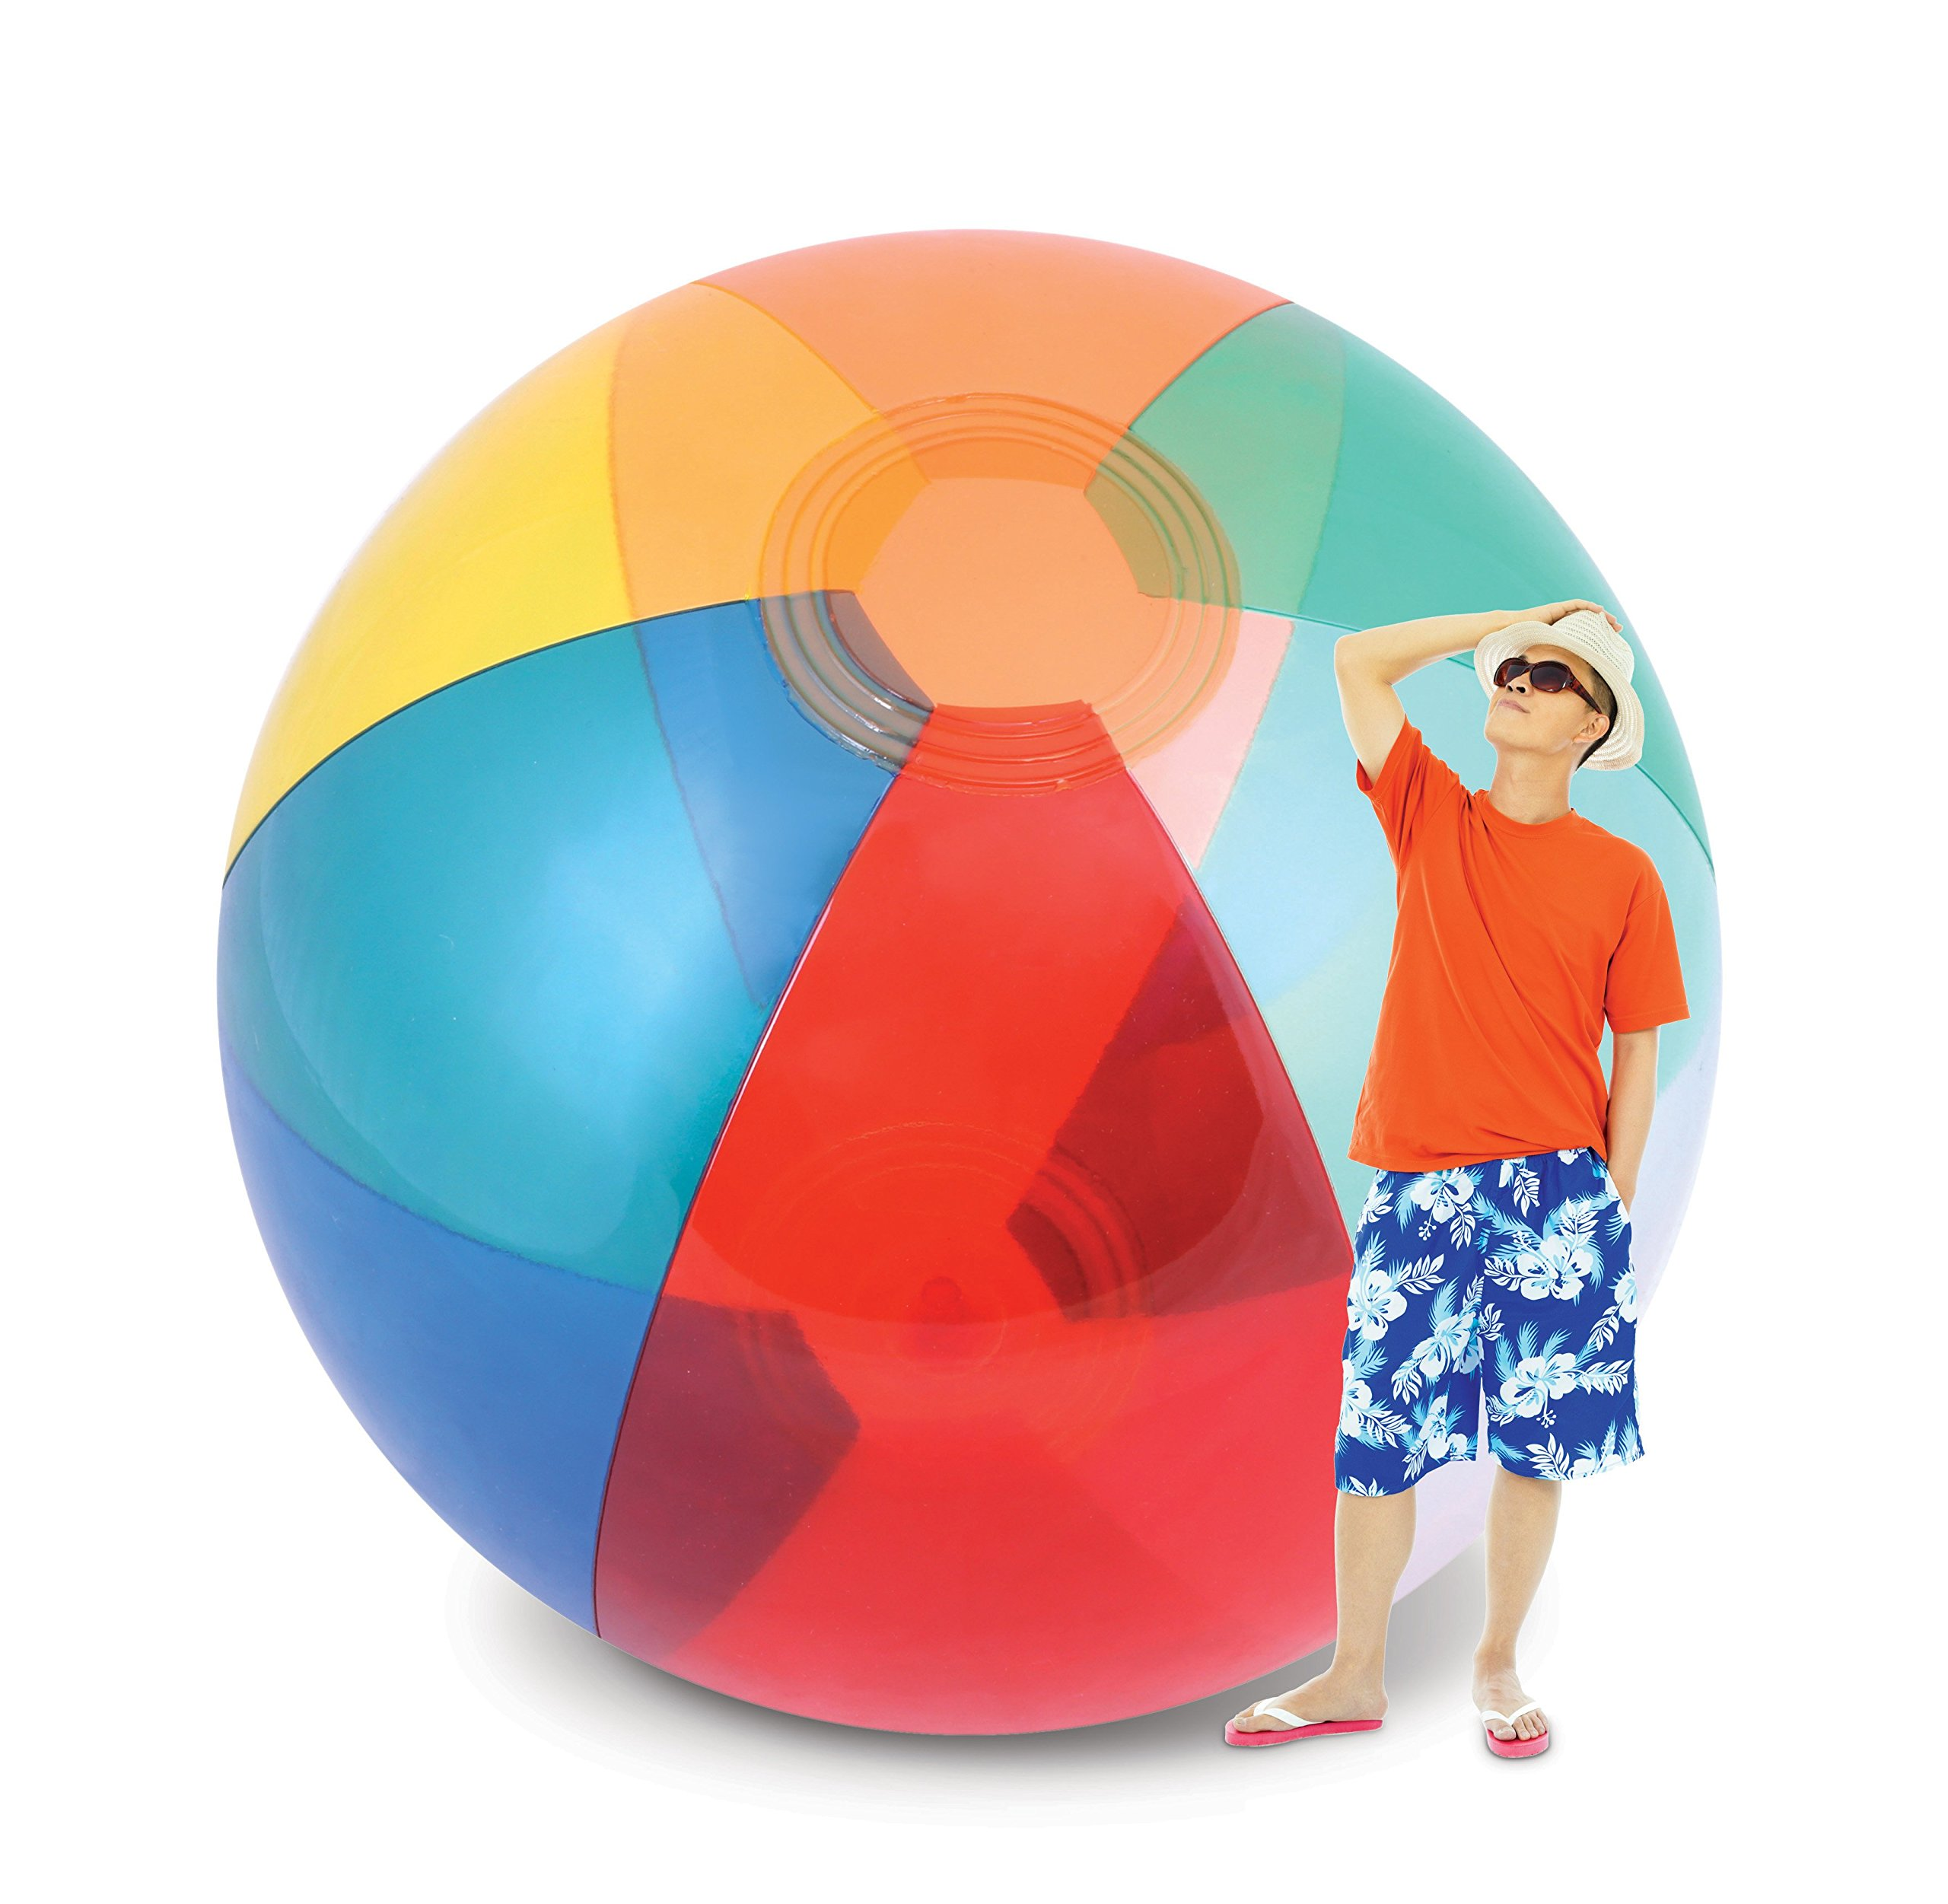 KOVOT Humongous Larger Than Life Transparent Giant Beach Ball: 8-9 Feet Tall Inflated - 12 Feet From Pole to Pole